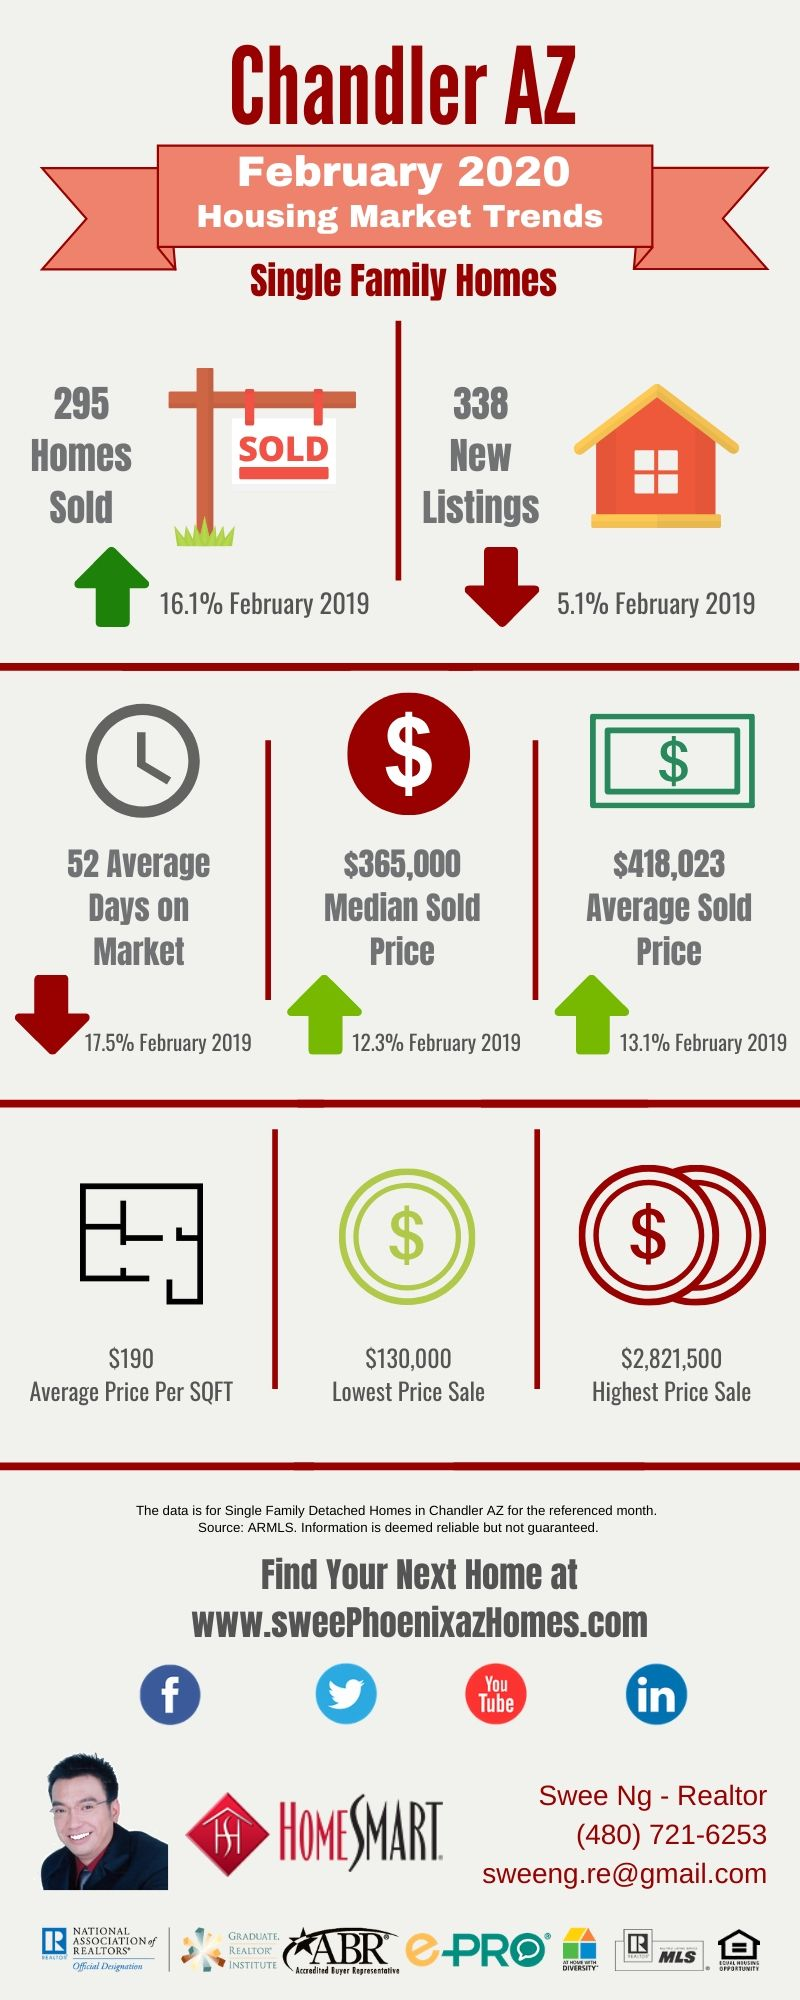 February 2020 Chandler AZ Housing Market Trends Report by Swee Ng, Real Estate and House Value